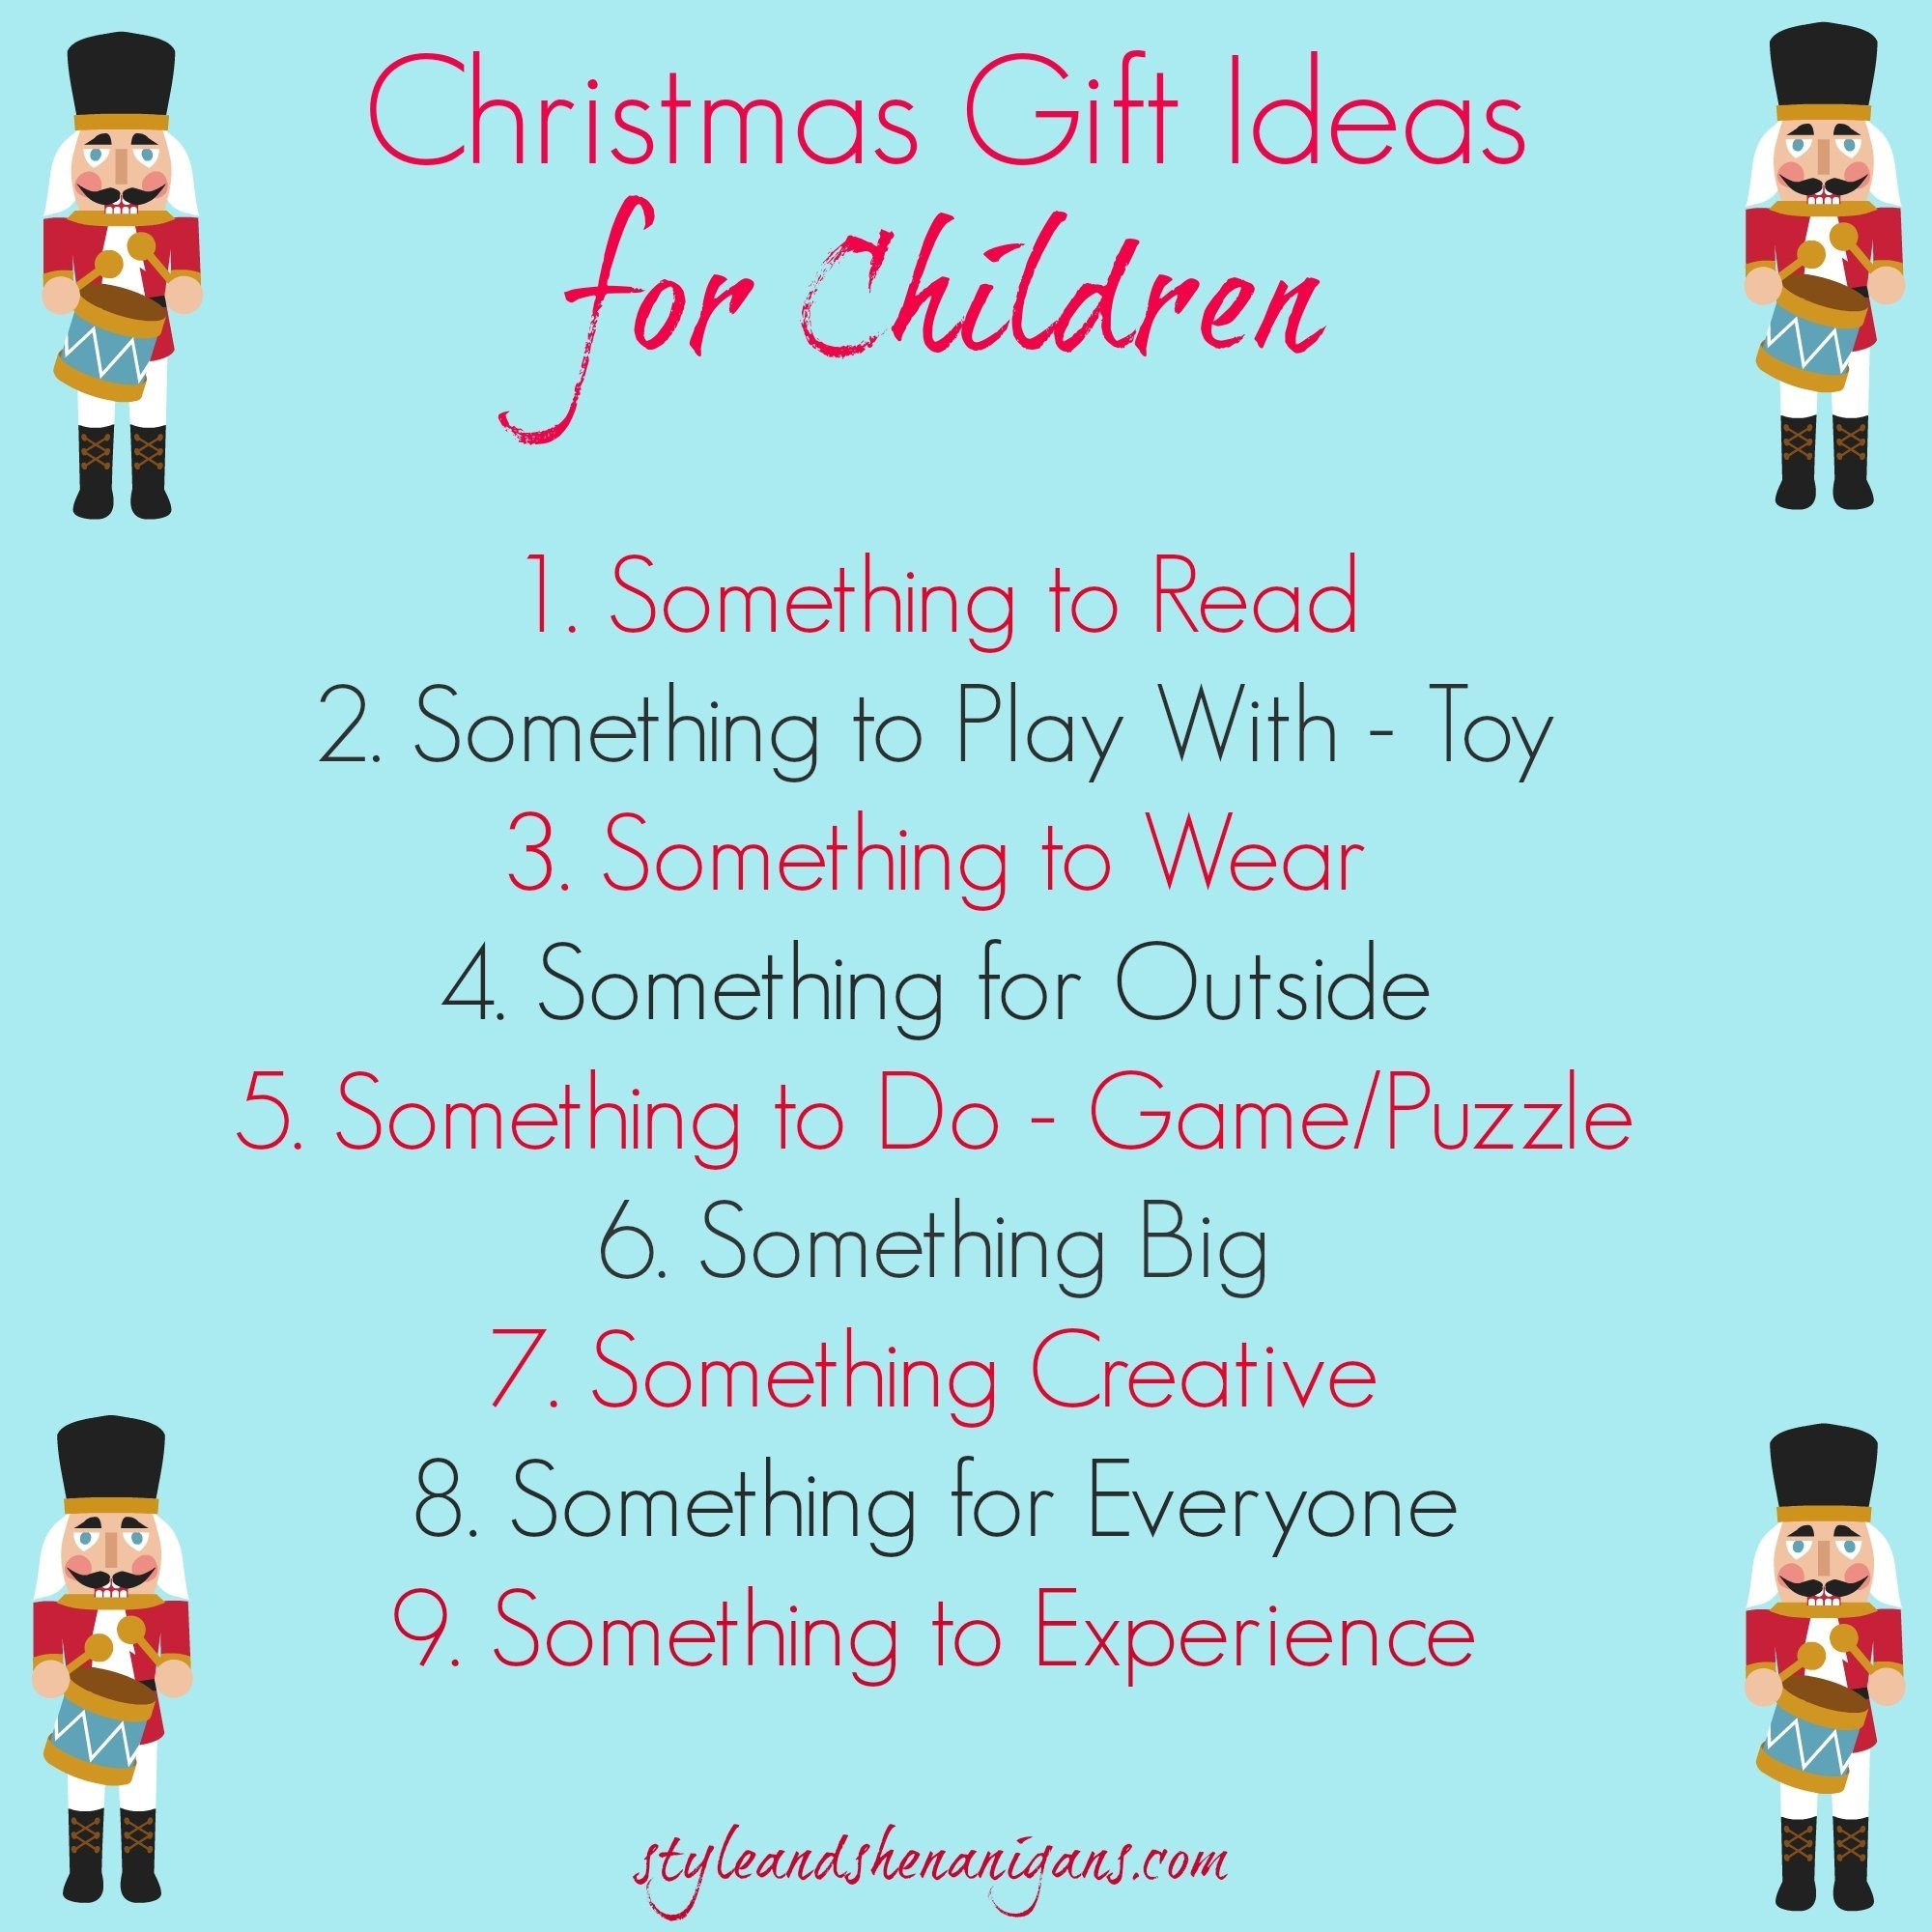 10 Fashionable Ideas For Christmas Gifts For Kids christmas gift ideas for kids christmas 2014 style shenanigans 4 2020